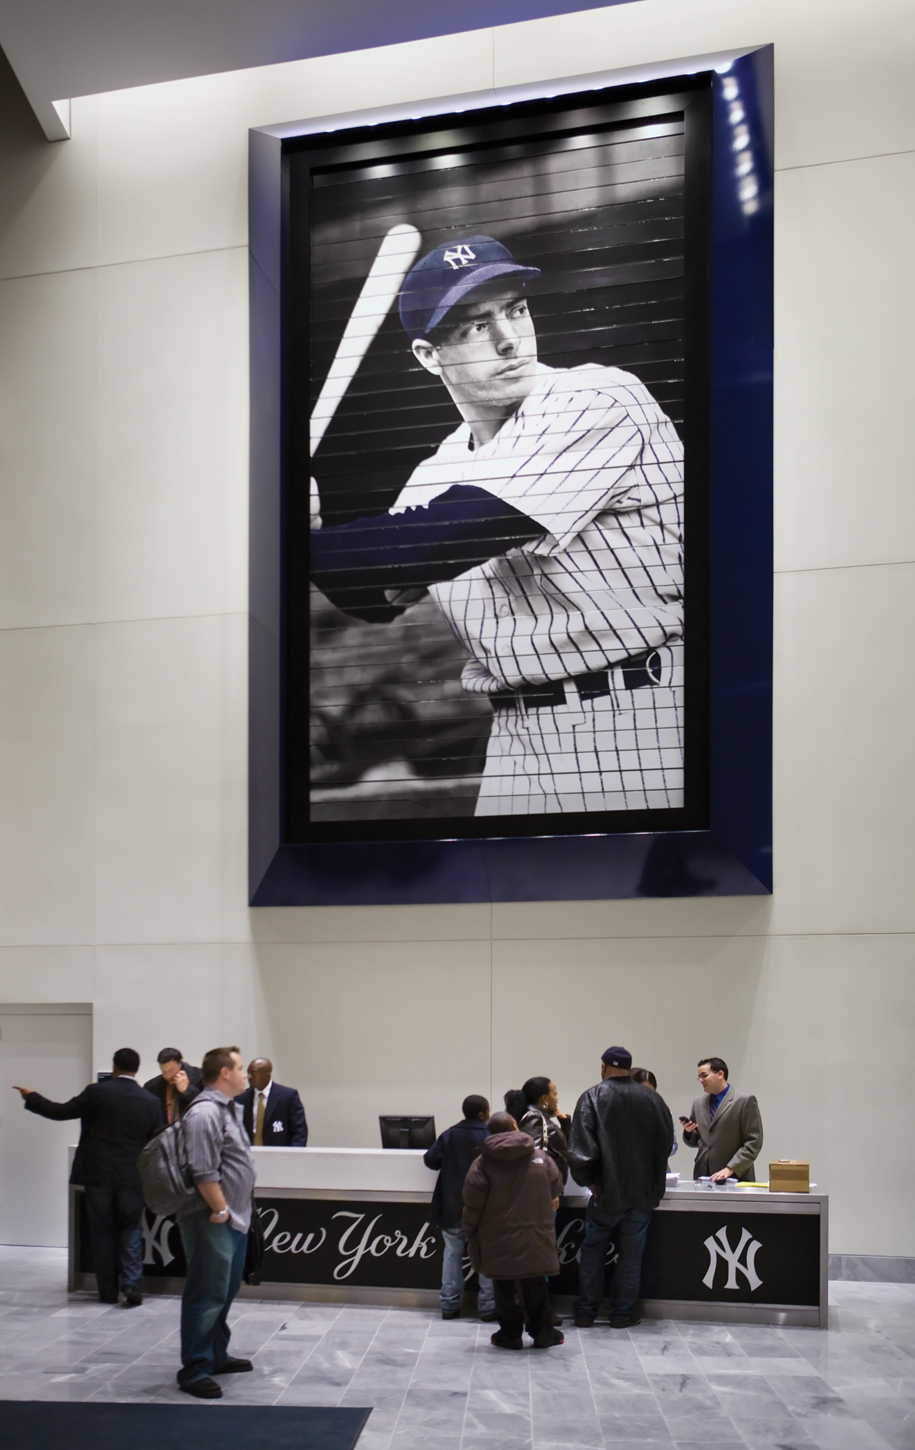 Project image 2 for Stadium Graphics, New York Yankees